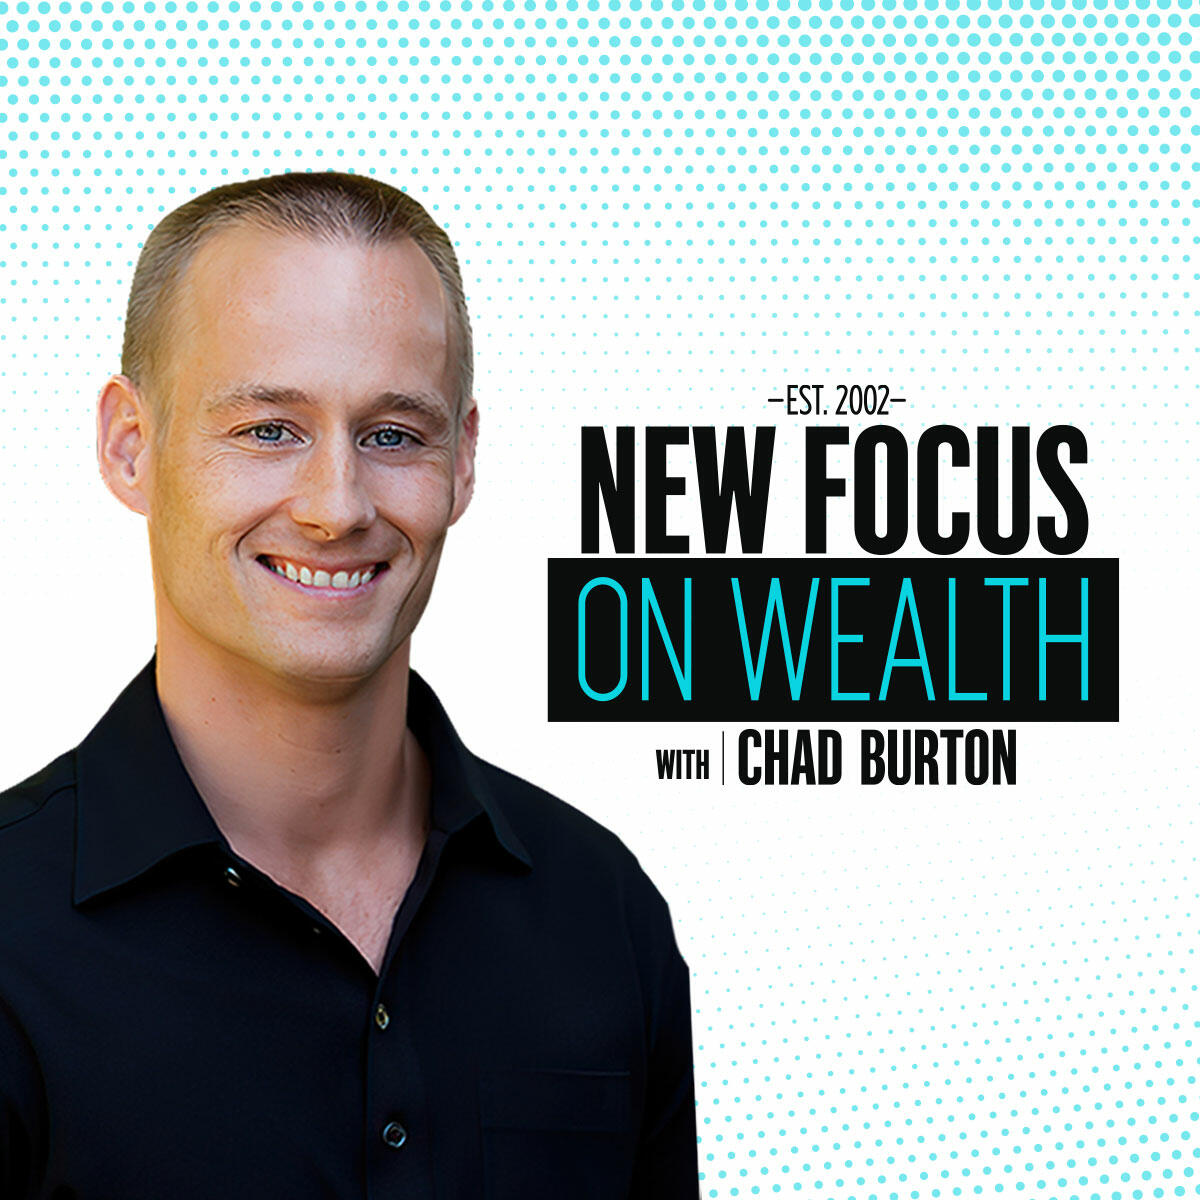 New Focus on Wealth with Chad Burton